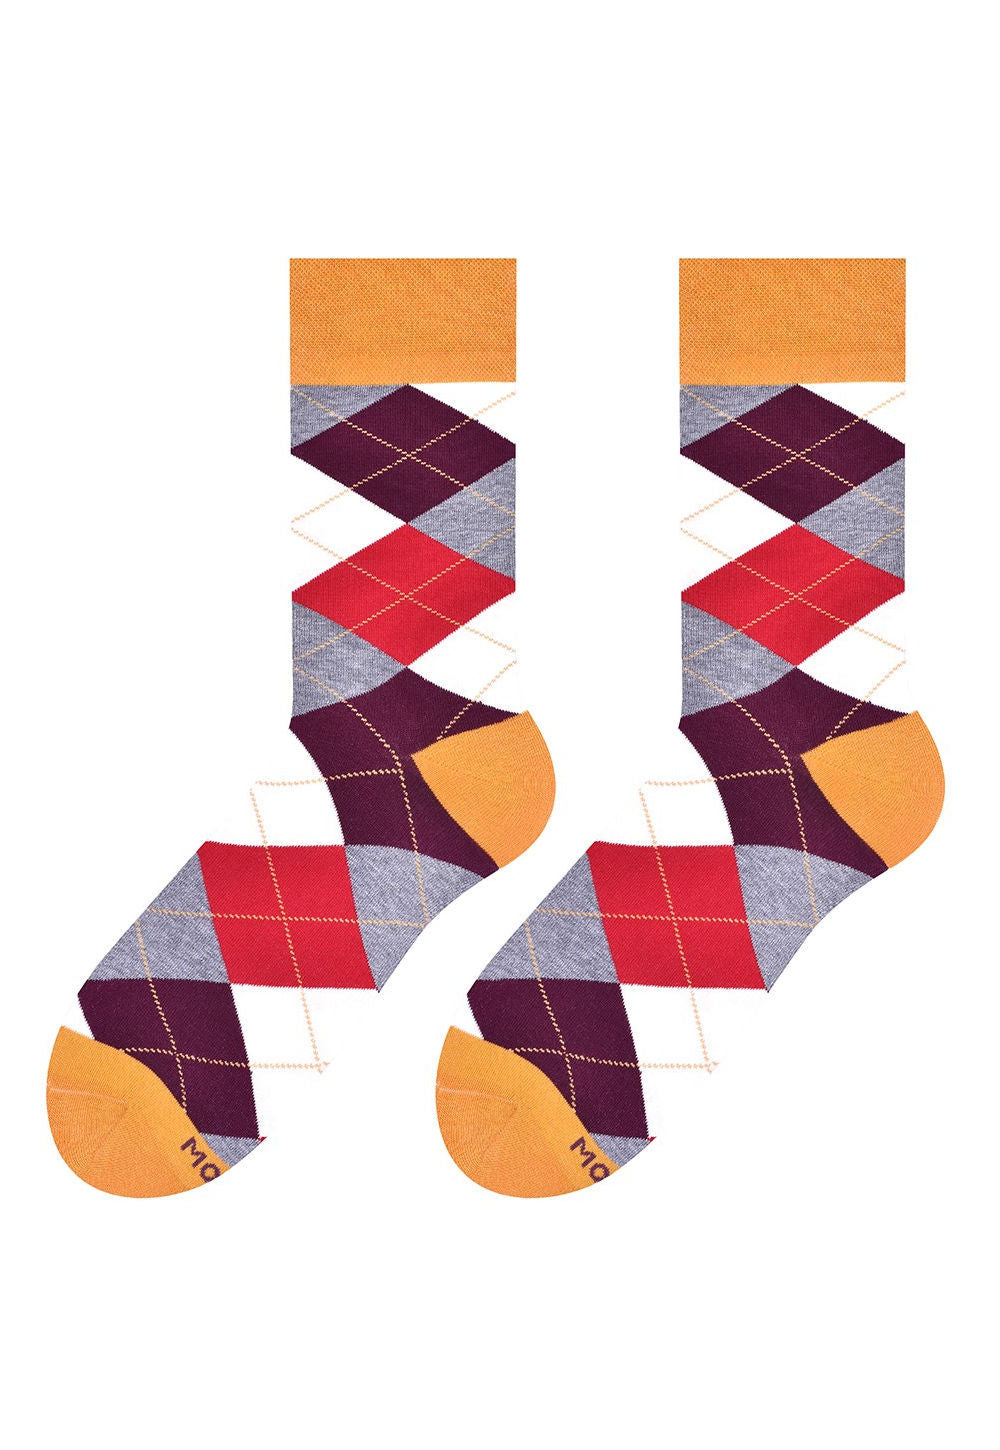 Argyle Patterned Socks in Burgundy, Red, White, Grey, Yellow by More